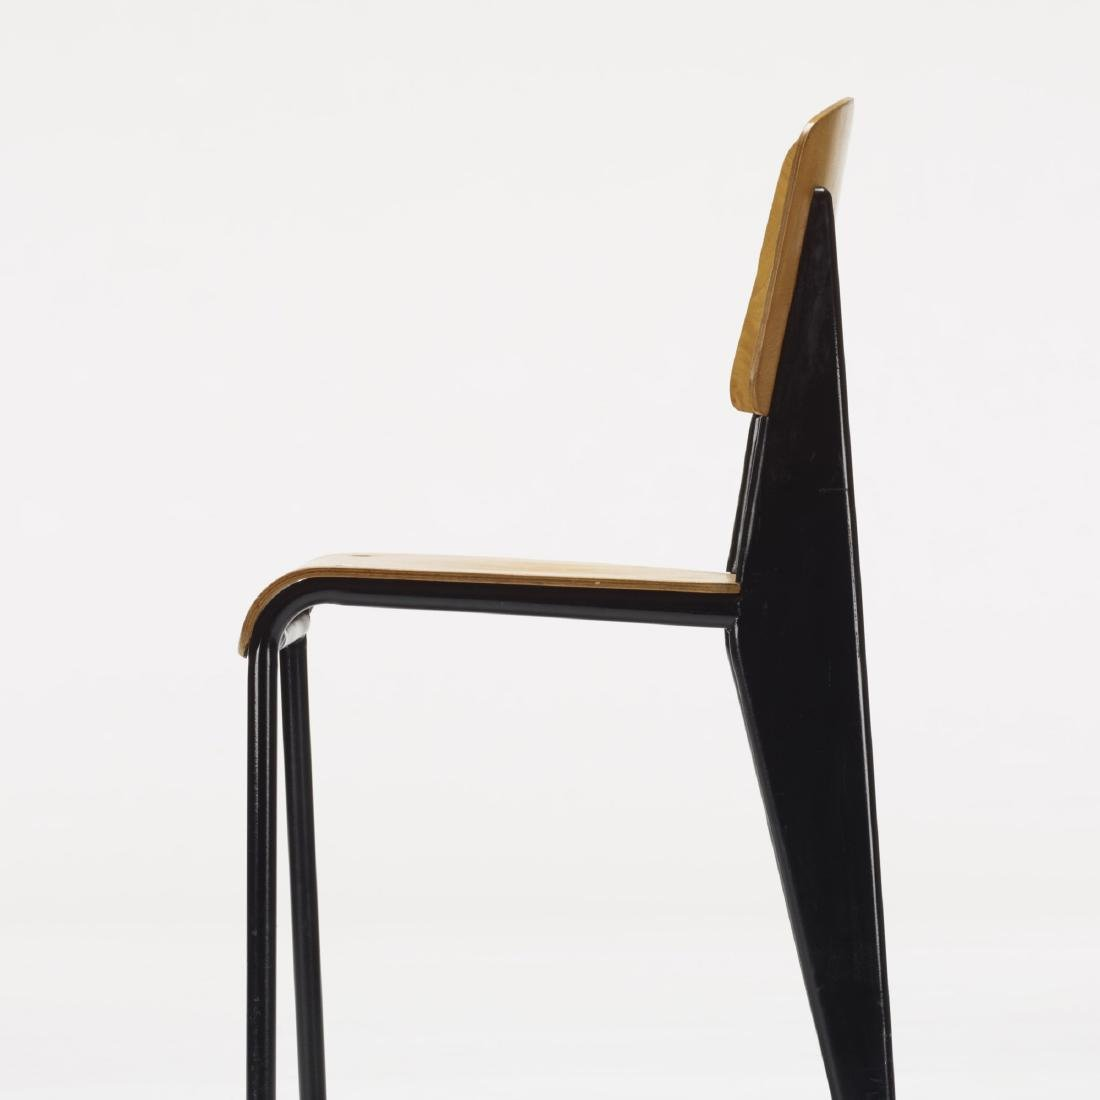 Jean Prouve, 'Semi-Metal' chair, no. 305 - 3